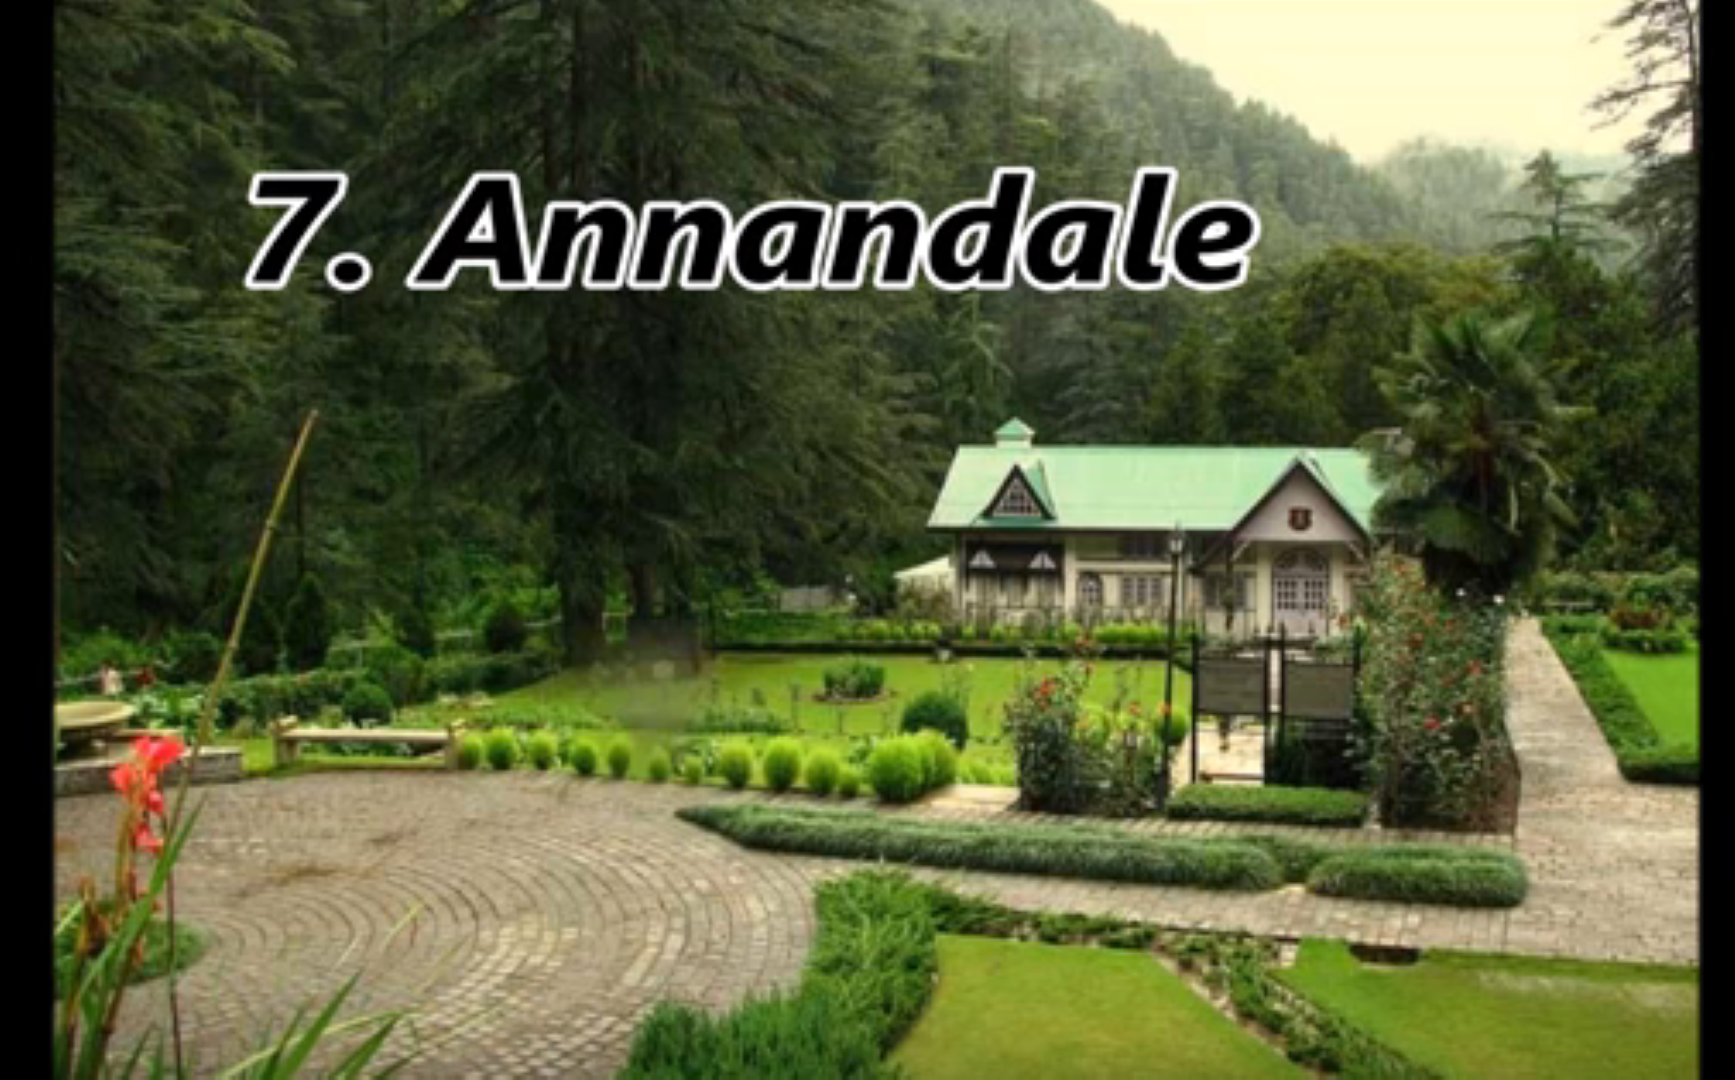 Annandale tour by tempo traveller